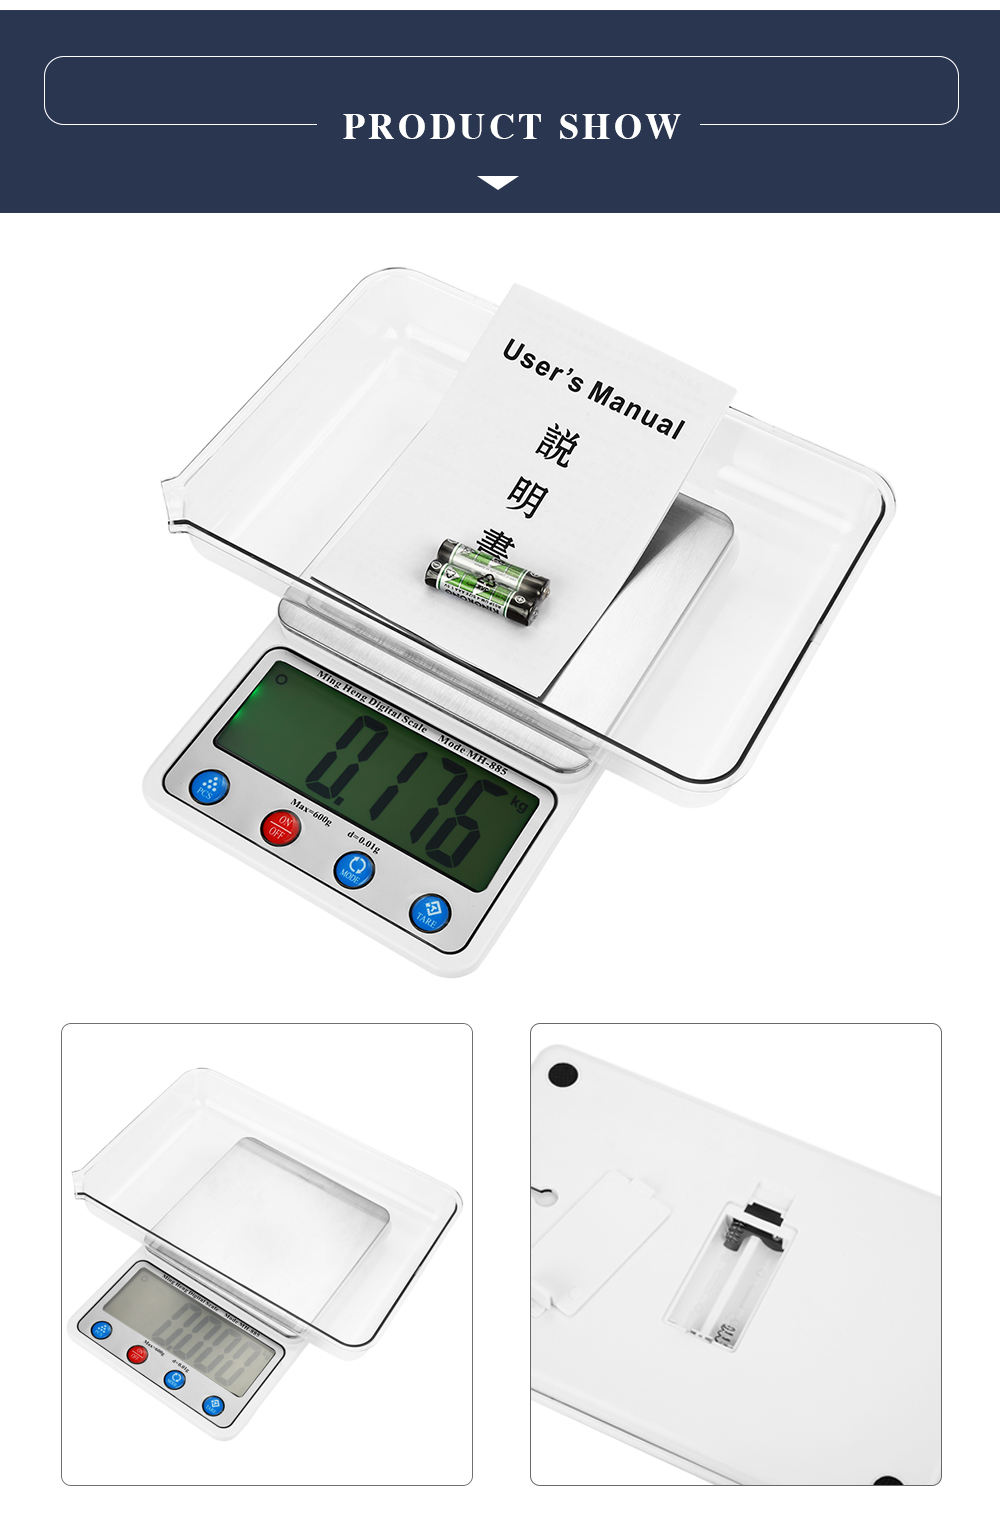 MH - 885 600g 4.5 inch LCD Digital Scale with 0.01g High Accuracy